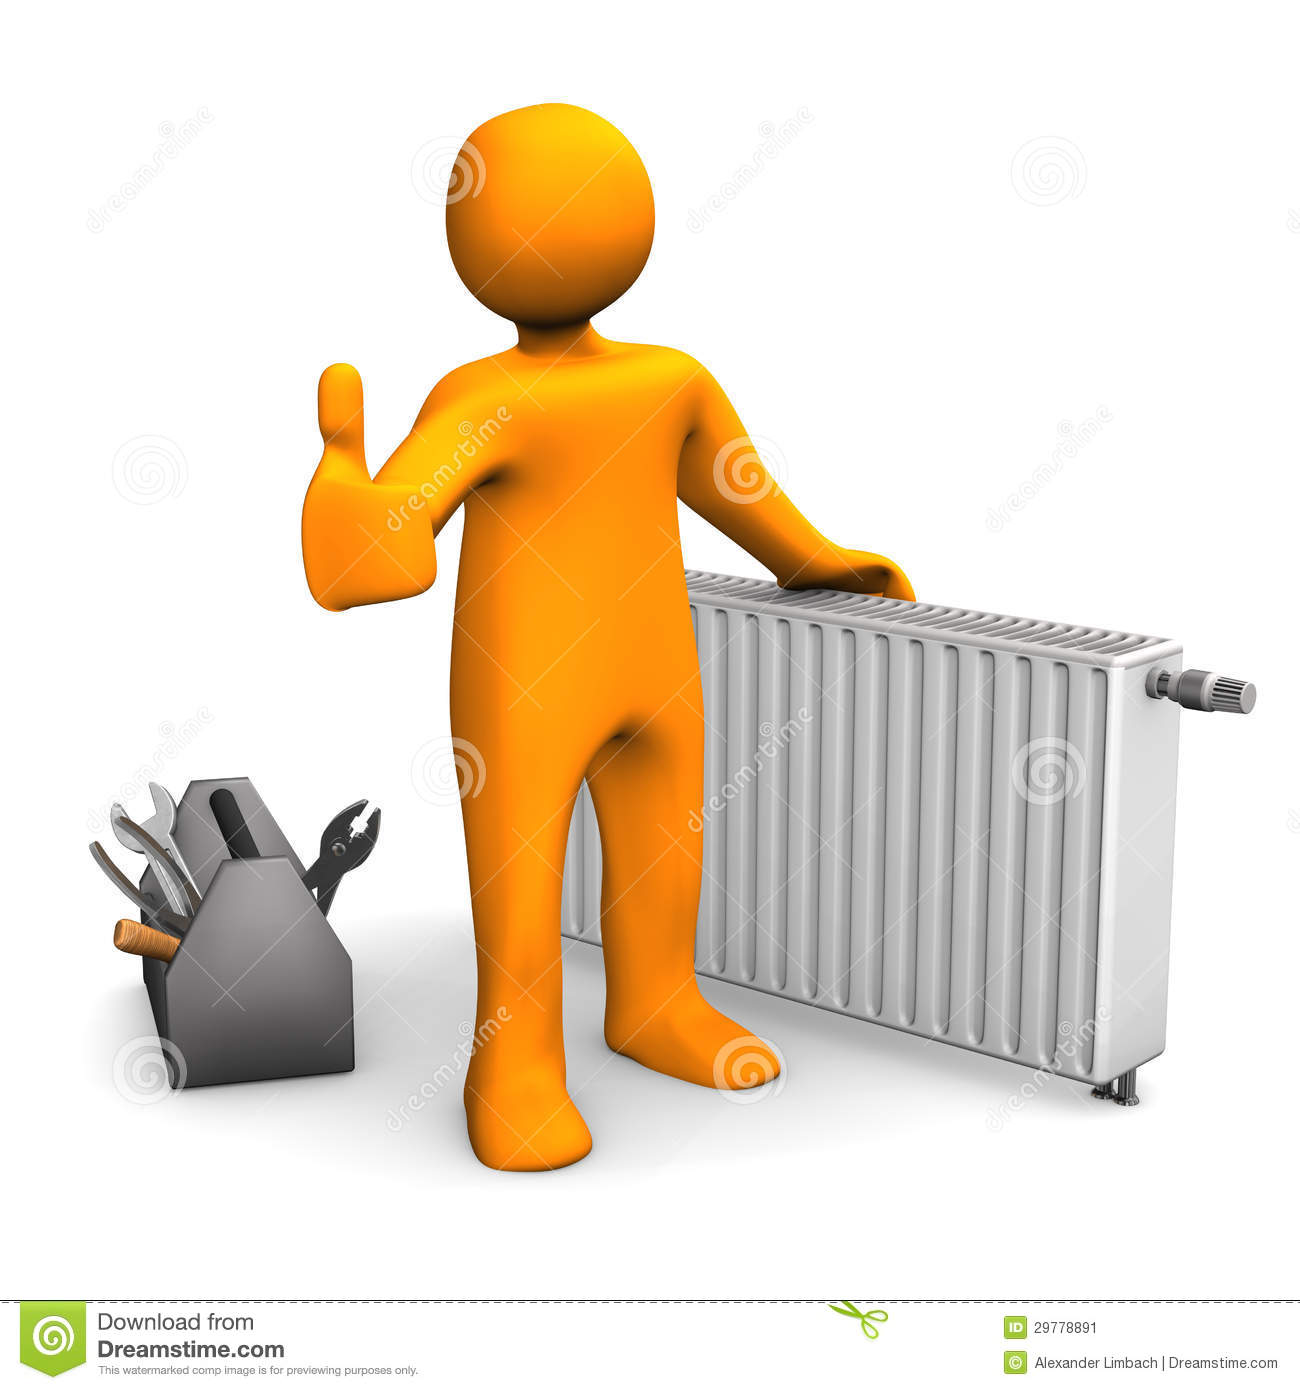 Heater Symbol Clipart - Clipart Kid